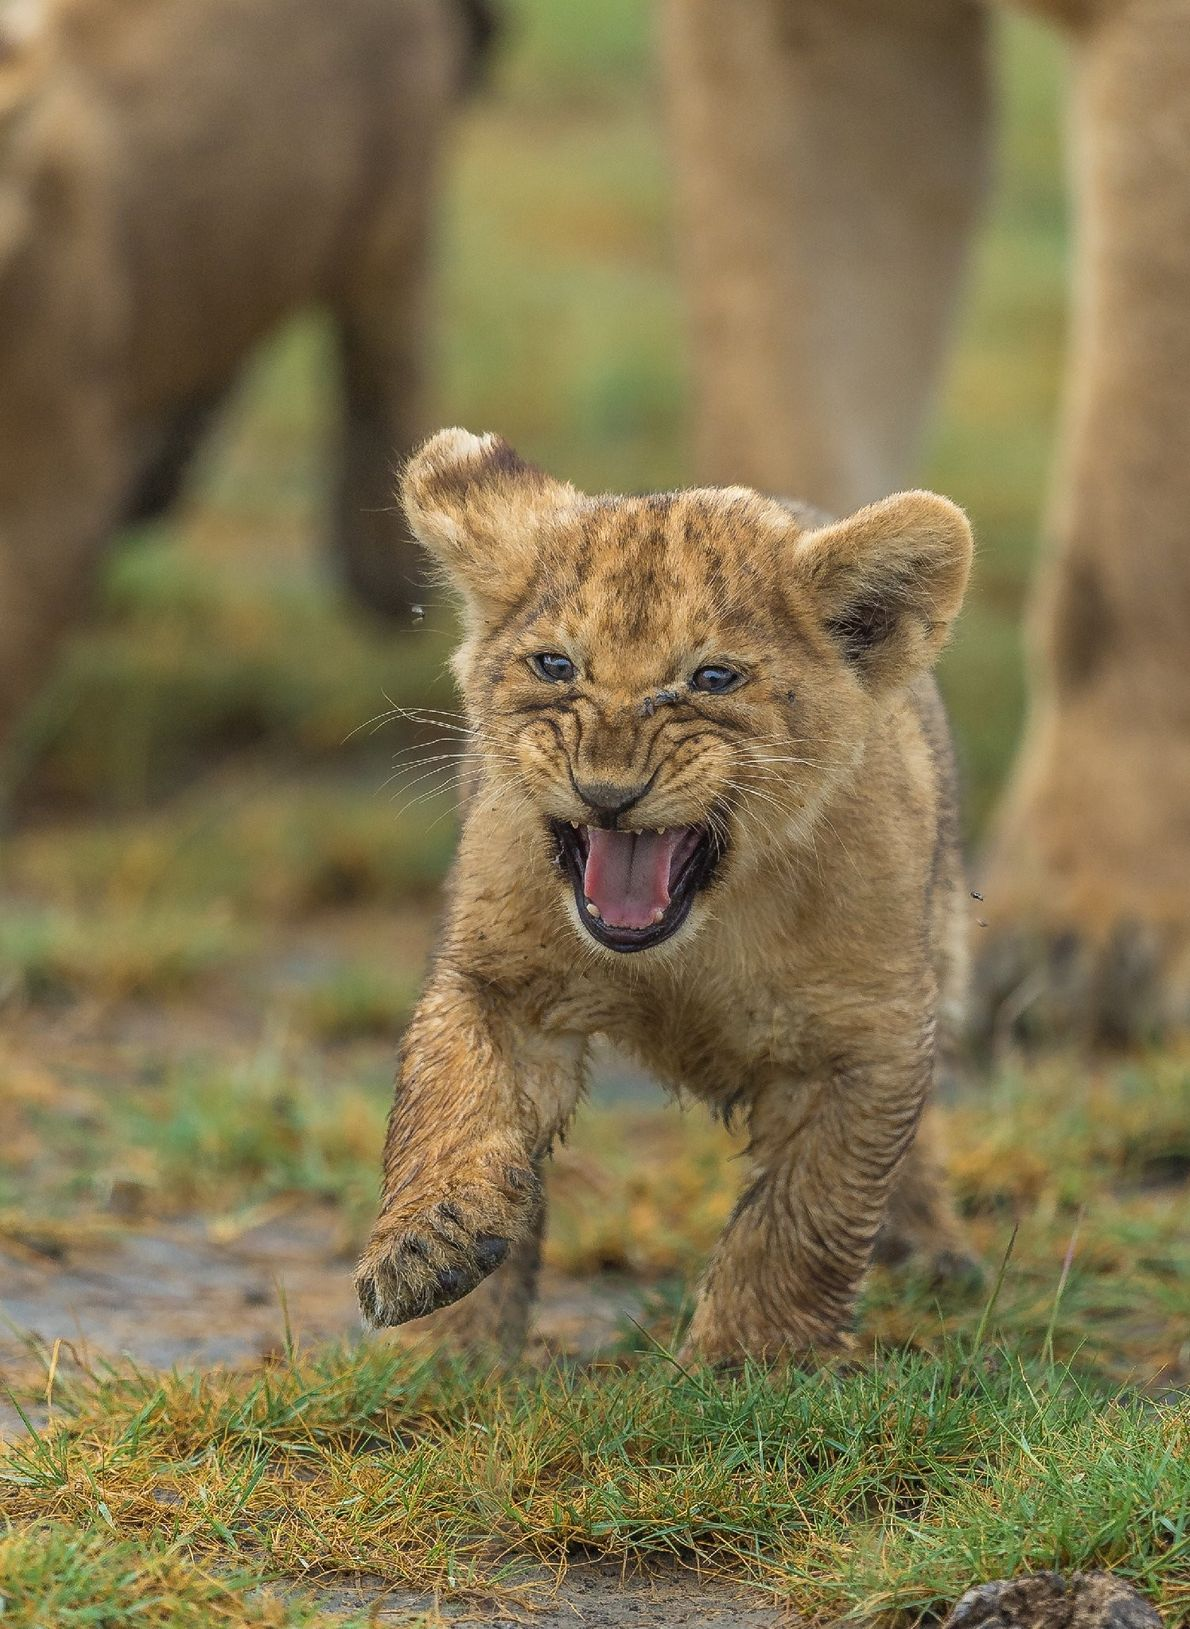 Your Shot photographer Zhayynn James documented this lion cub from the Marsh pride in the Ndutu ...